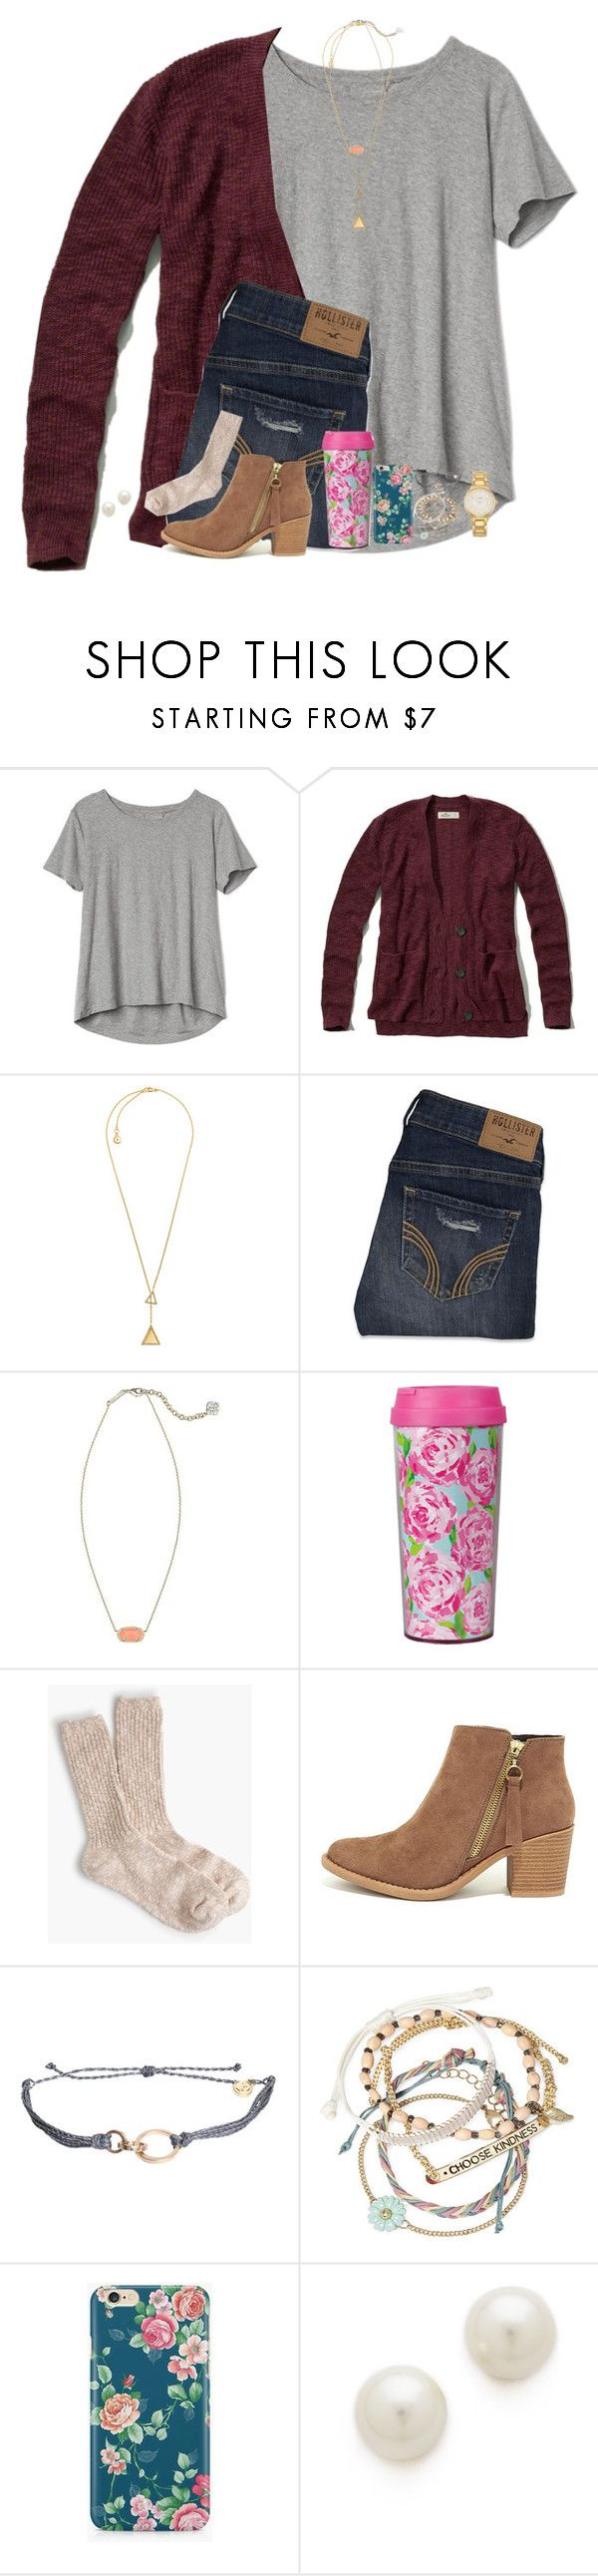 """""""Saw my ex while I was puking last night"""" by stripedprep ❤ liked on Polyvore featuring Gap, Hollister Co., Michael Kors, Kendra Scott, Lilly Pulitzer, J.Crew, LULUS, Pura Vida, Decree and Caso"""